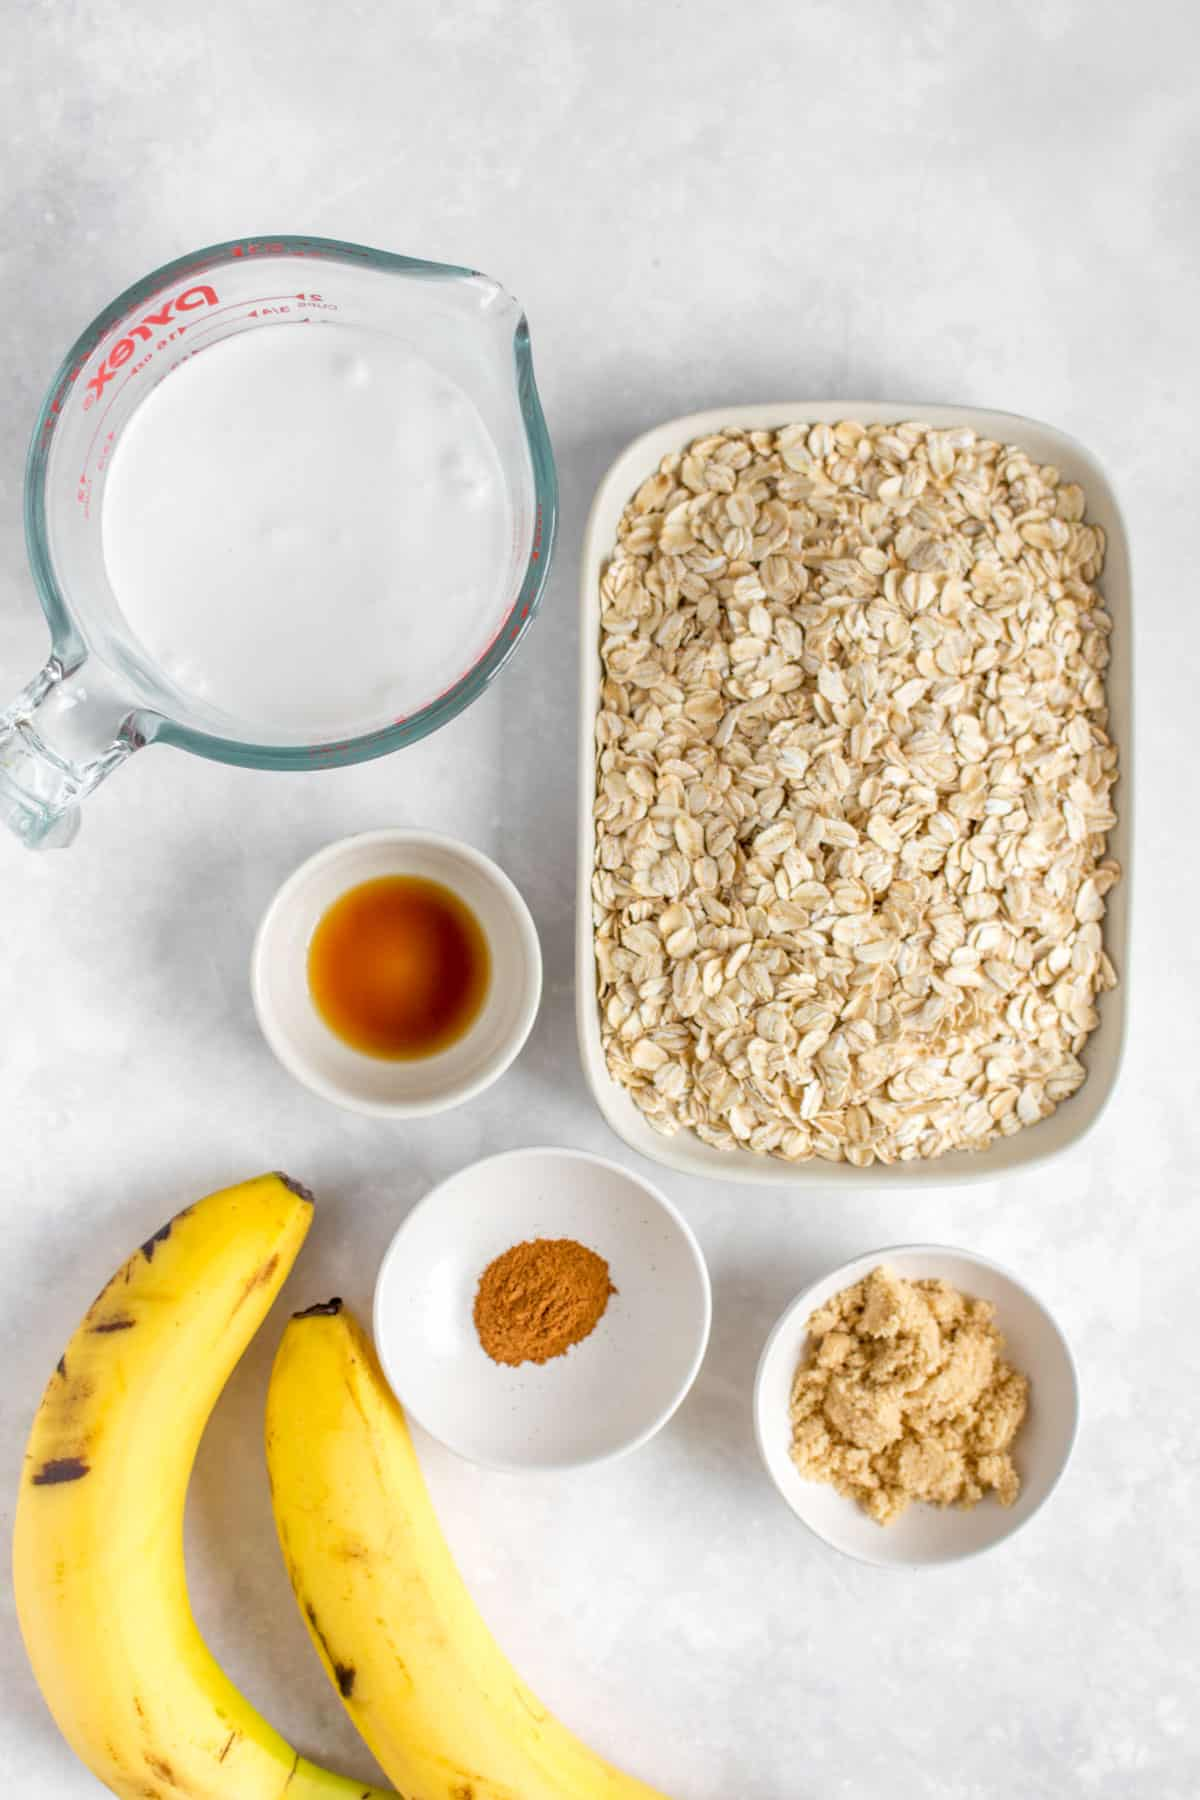 Ingredients needed to make banana bread oatmeal in the Instant Pot.